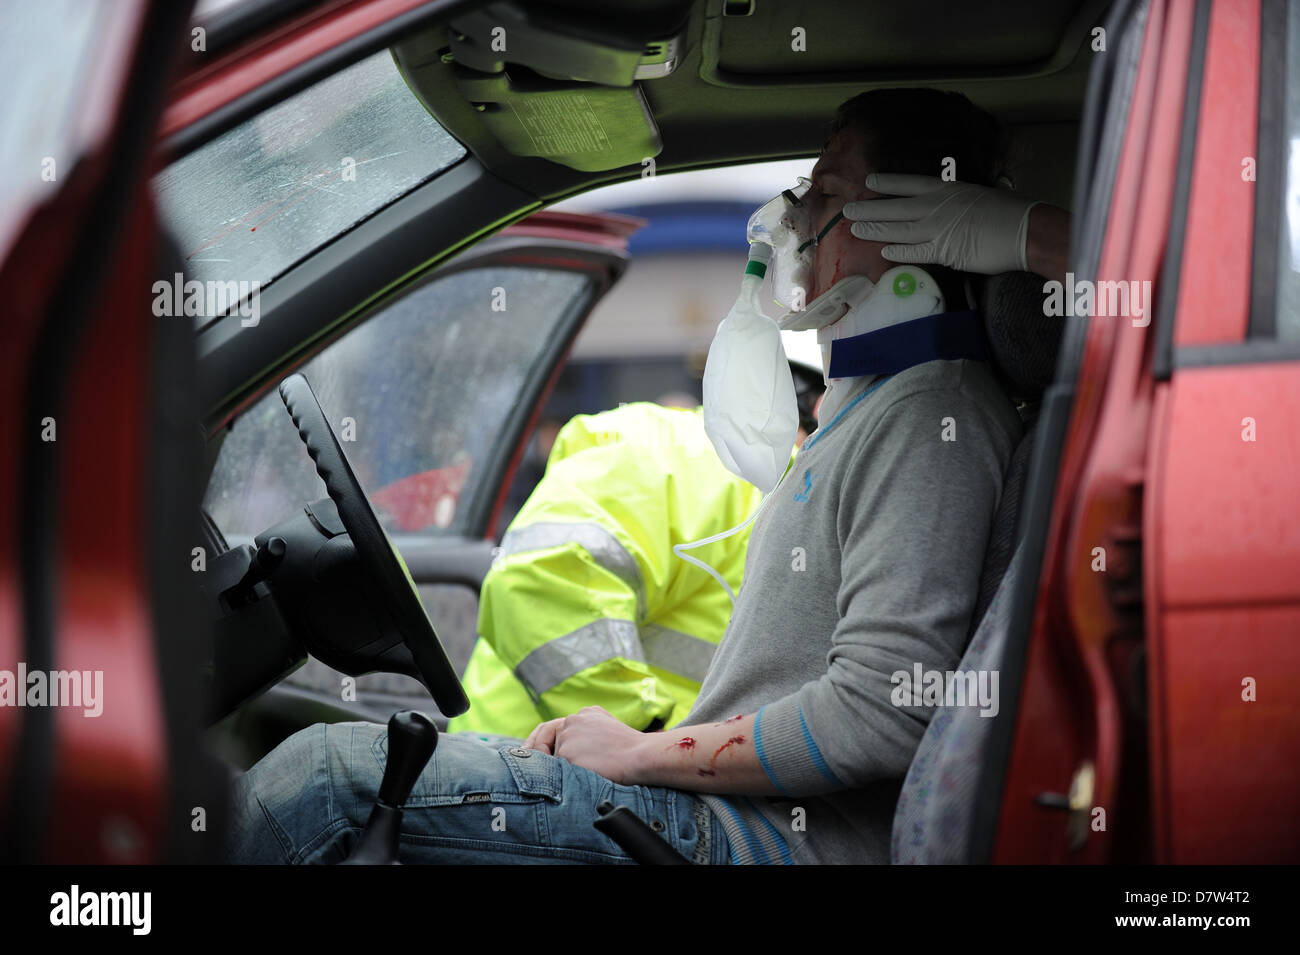 A road traffic accident (rta) victim is dealt with by an ambulance crew after a car crash. - Stock Image